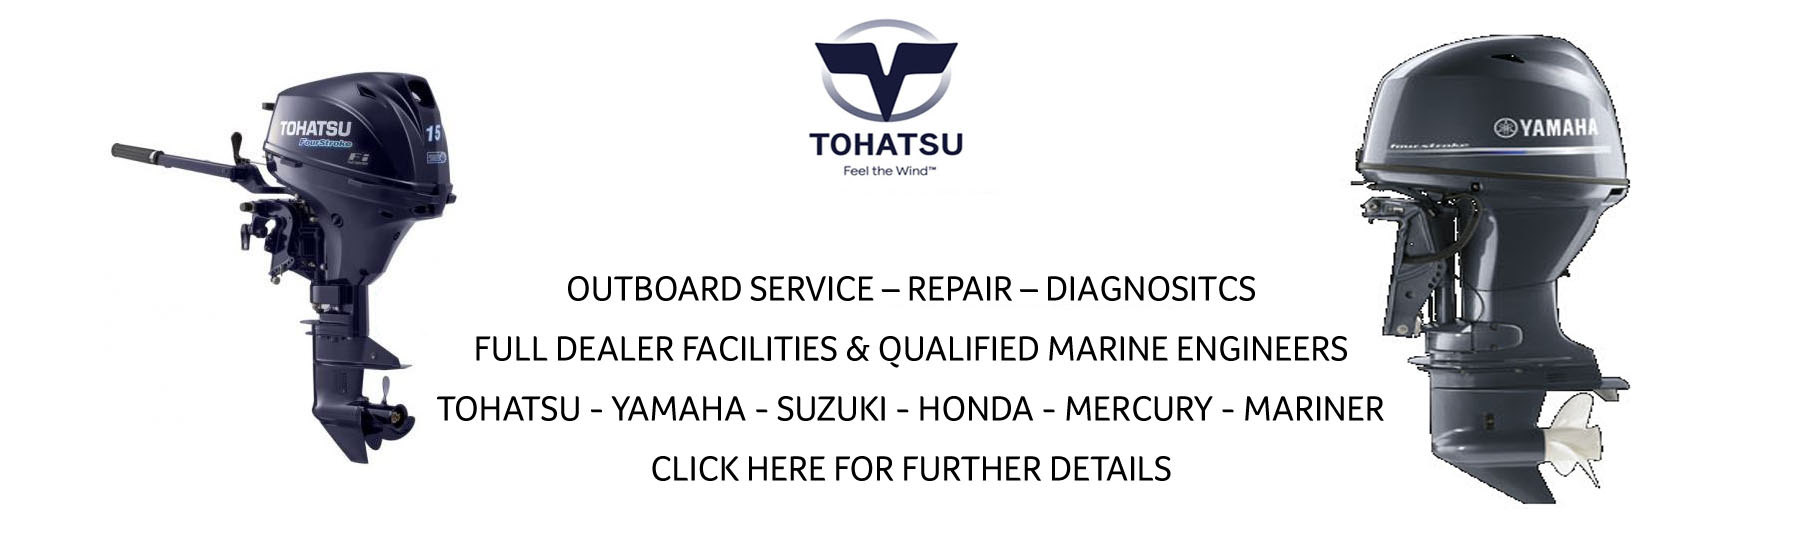 outboard-service-banner-copy.jpg